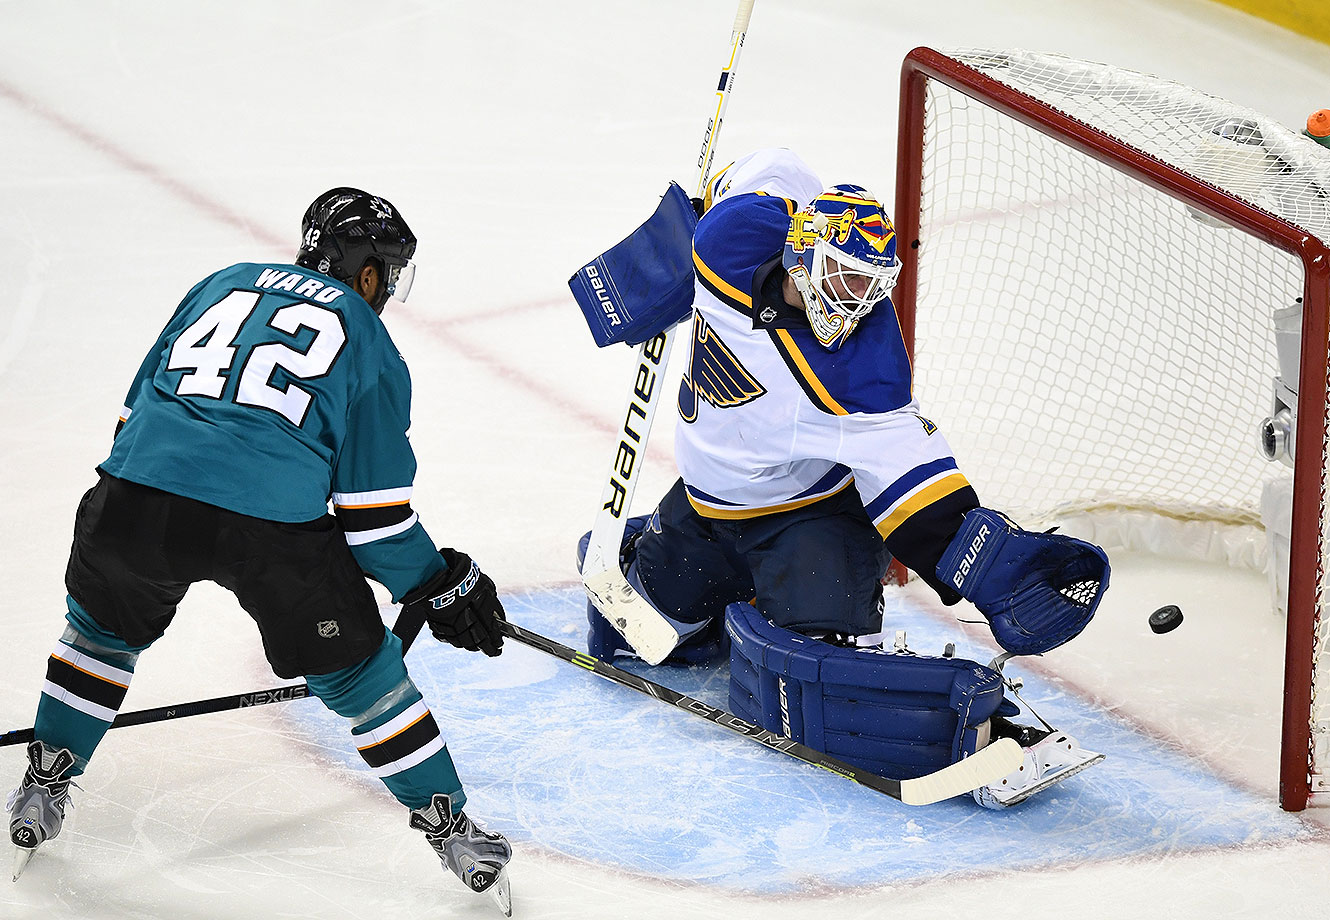 Joel Ward #42 of the San Jose Sharks scores his second goal on Brian Elliott #1 of the St. Louis Blues in Game Six of the Western Conference Final during the 2016 NHL Stanley Cup Playoffs at SAP Center on May 25, 2016 in San Jose, California.